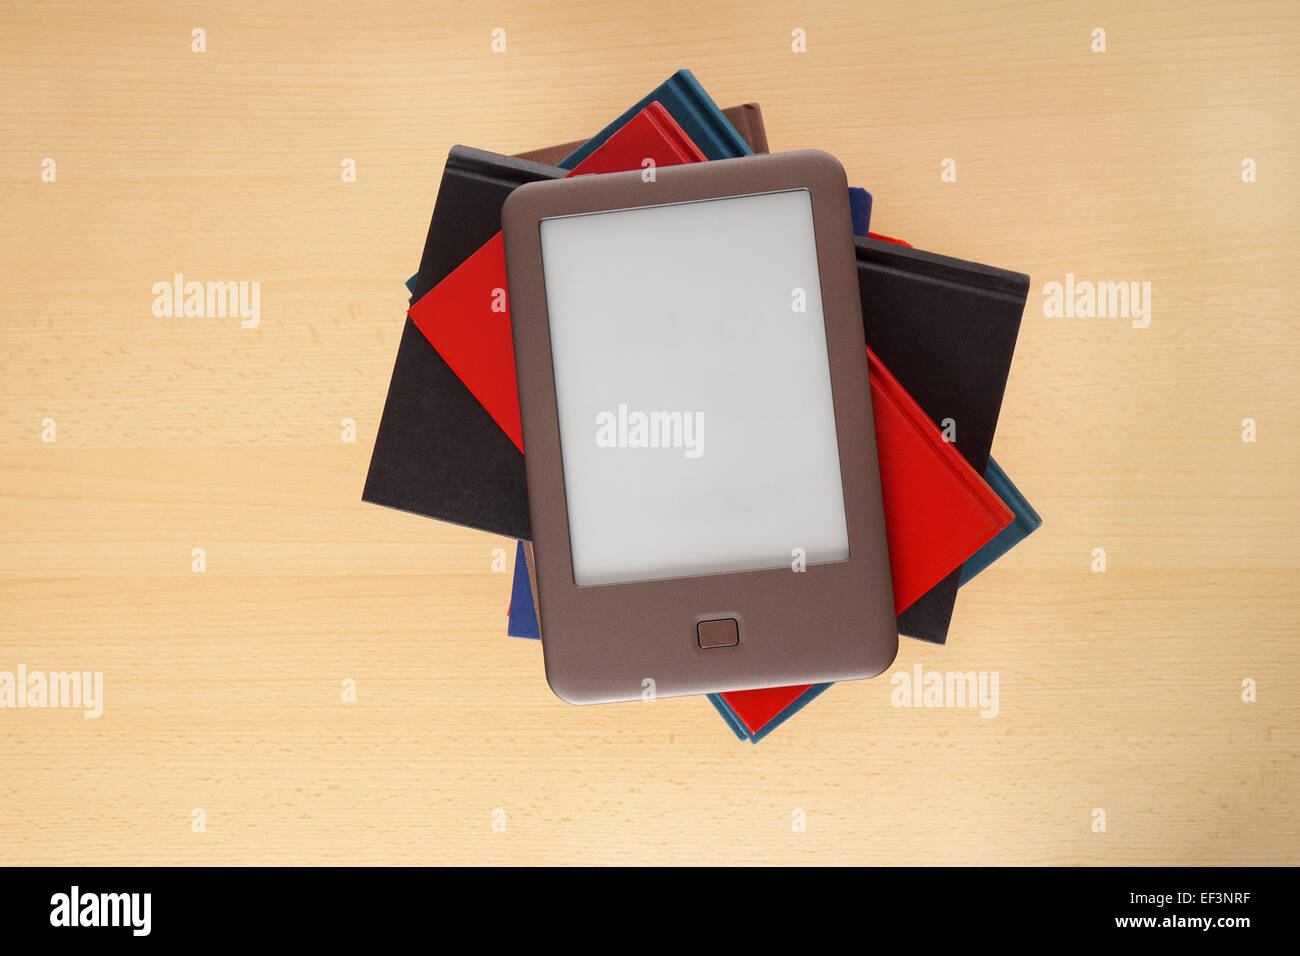 ebook reader on pile of books - Stock Image